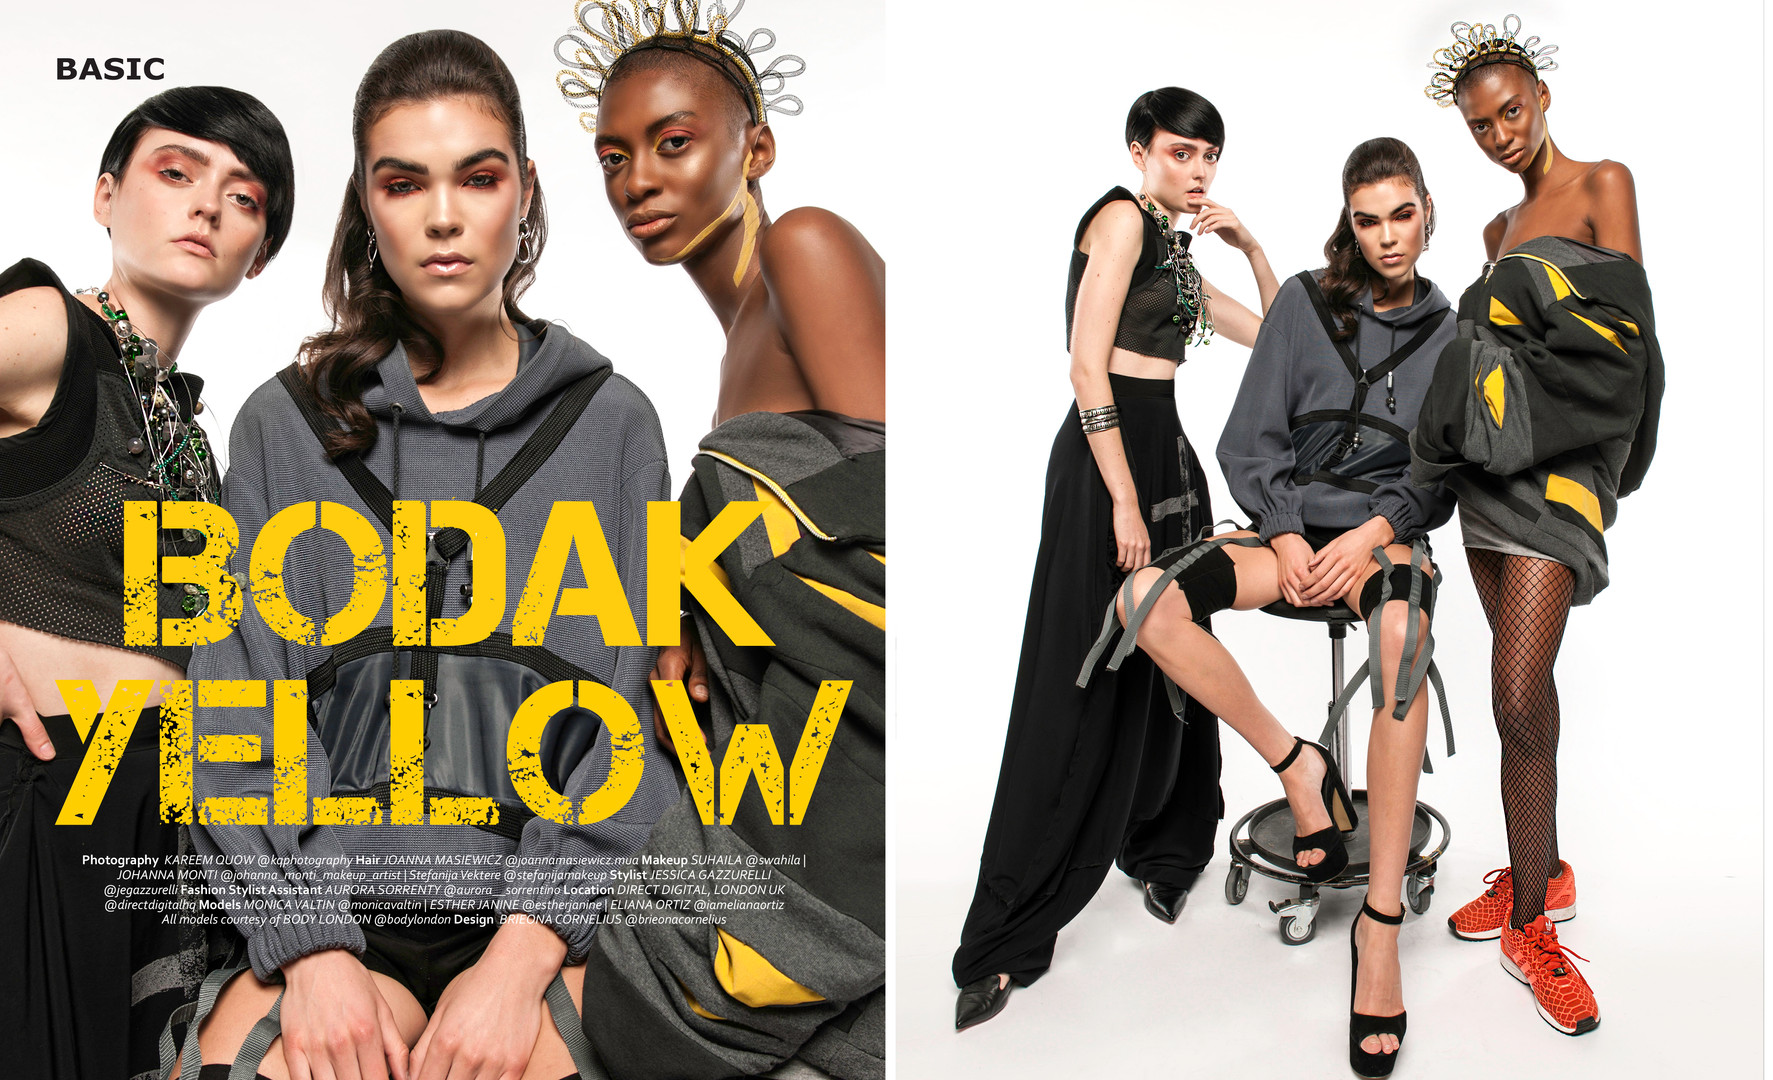 Basic Magazine http://basic-magazine.com/bodak-yellow-by-kareem-quow/ Photo @kqphotography(using @nikonusa and @profotoglobal gear courtesy of @directdigitalhq )  MUA (left-right) @johanna_monti_makeup_artist @stefanijamakeup  @swahilla  HAIR @joannamasiewicz.mua MODELS(left-right) @monicavaltin @estherjanine + @iamelianaortiz (all courtesy of @bodylondon) FSHN STYLST:@jegazzurelli @aurora___sorrentino CR DIR : @lliamss @purityxperience LOC @directdigitalhq LONDON UK